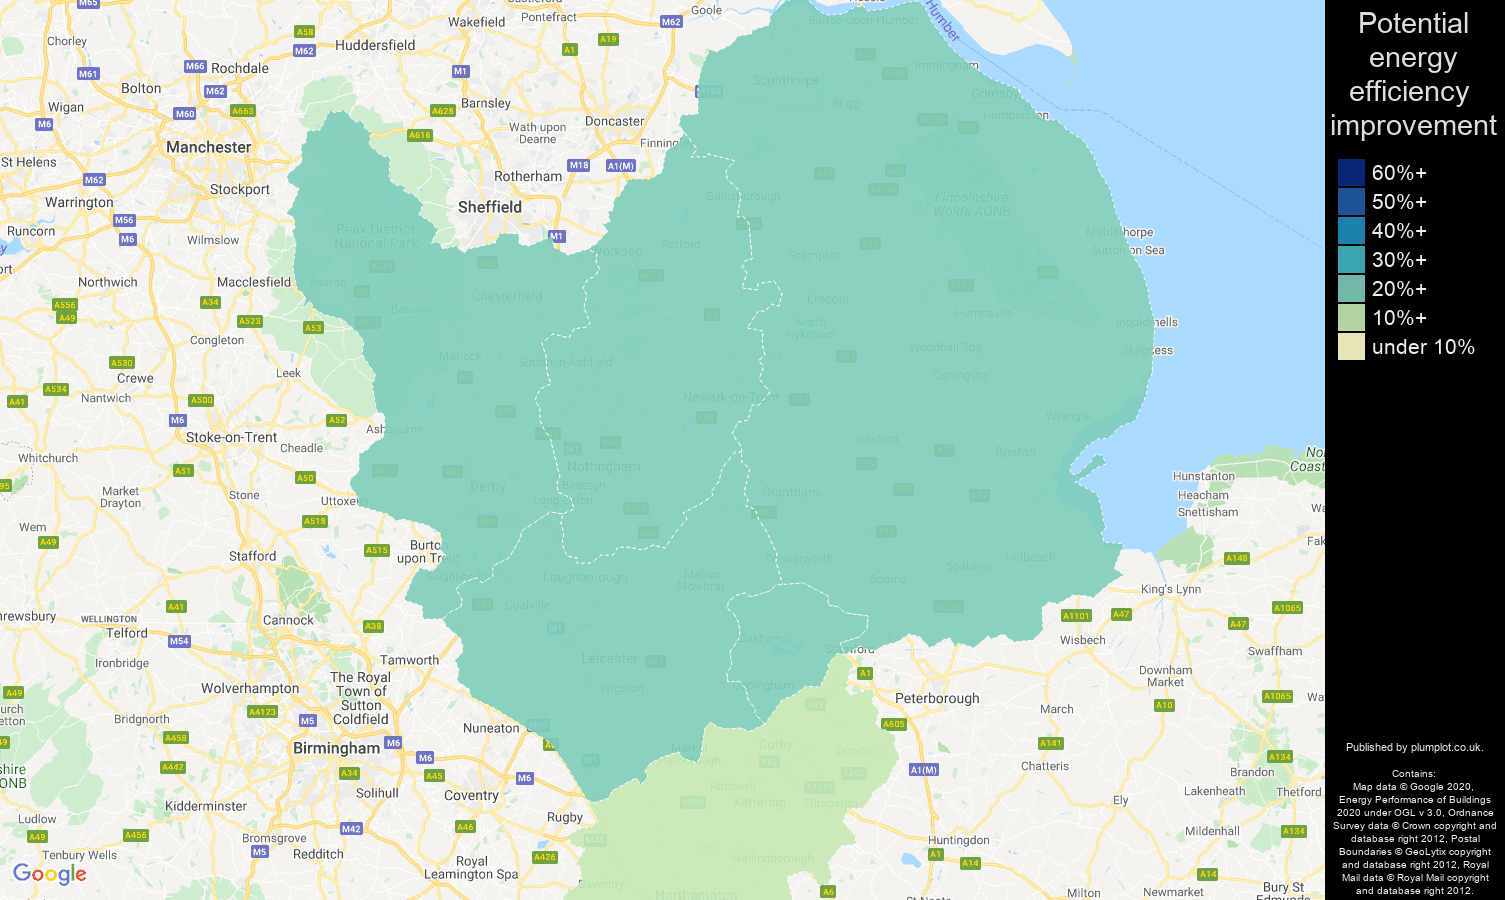 East Midlands map of potential energy efficiency improvement of properties